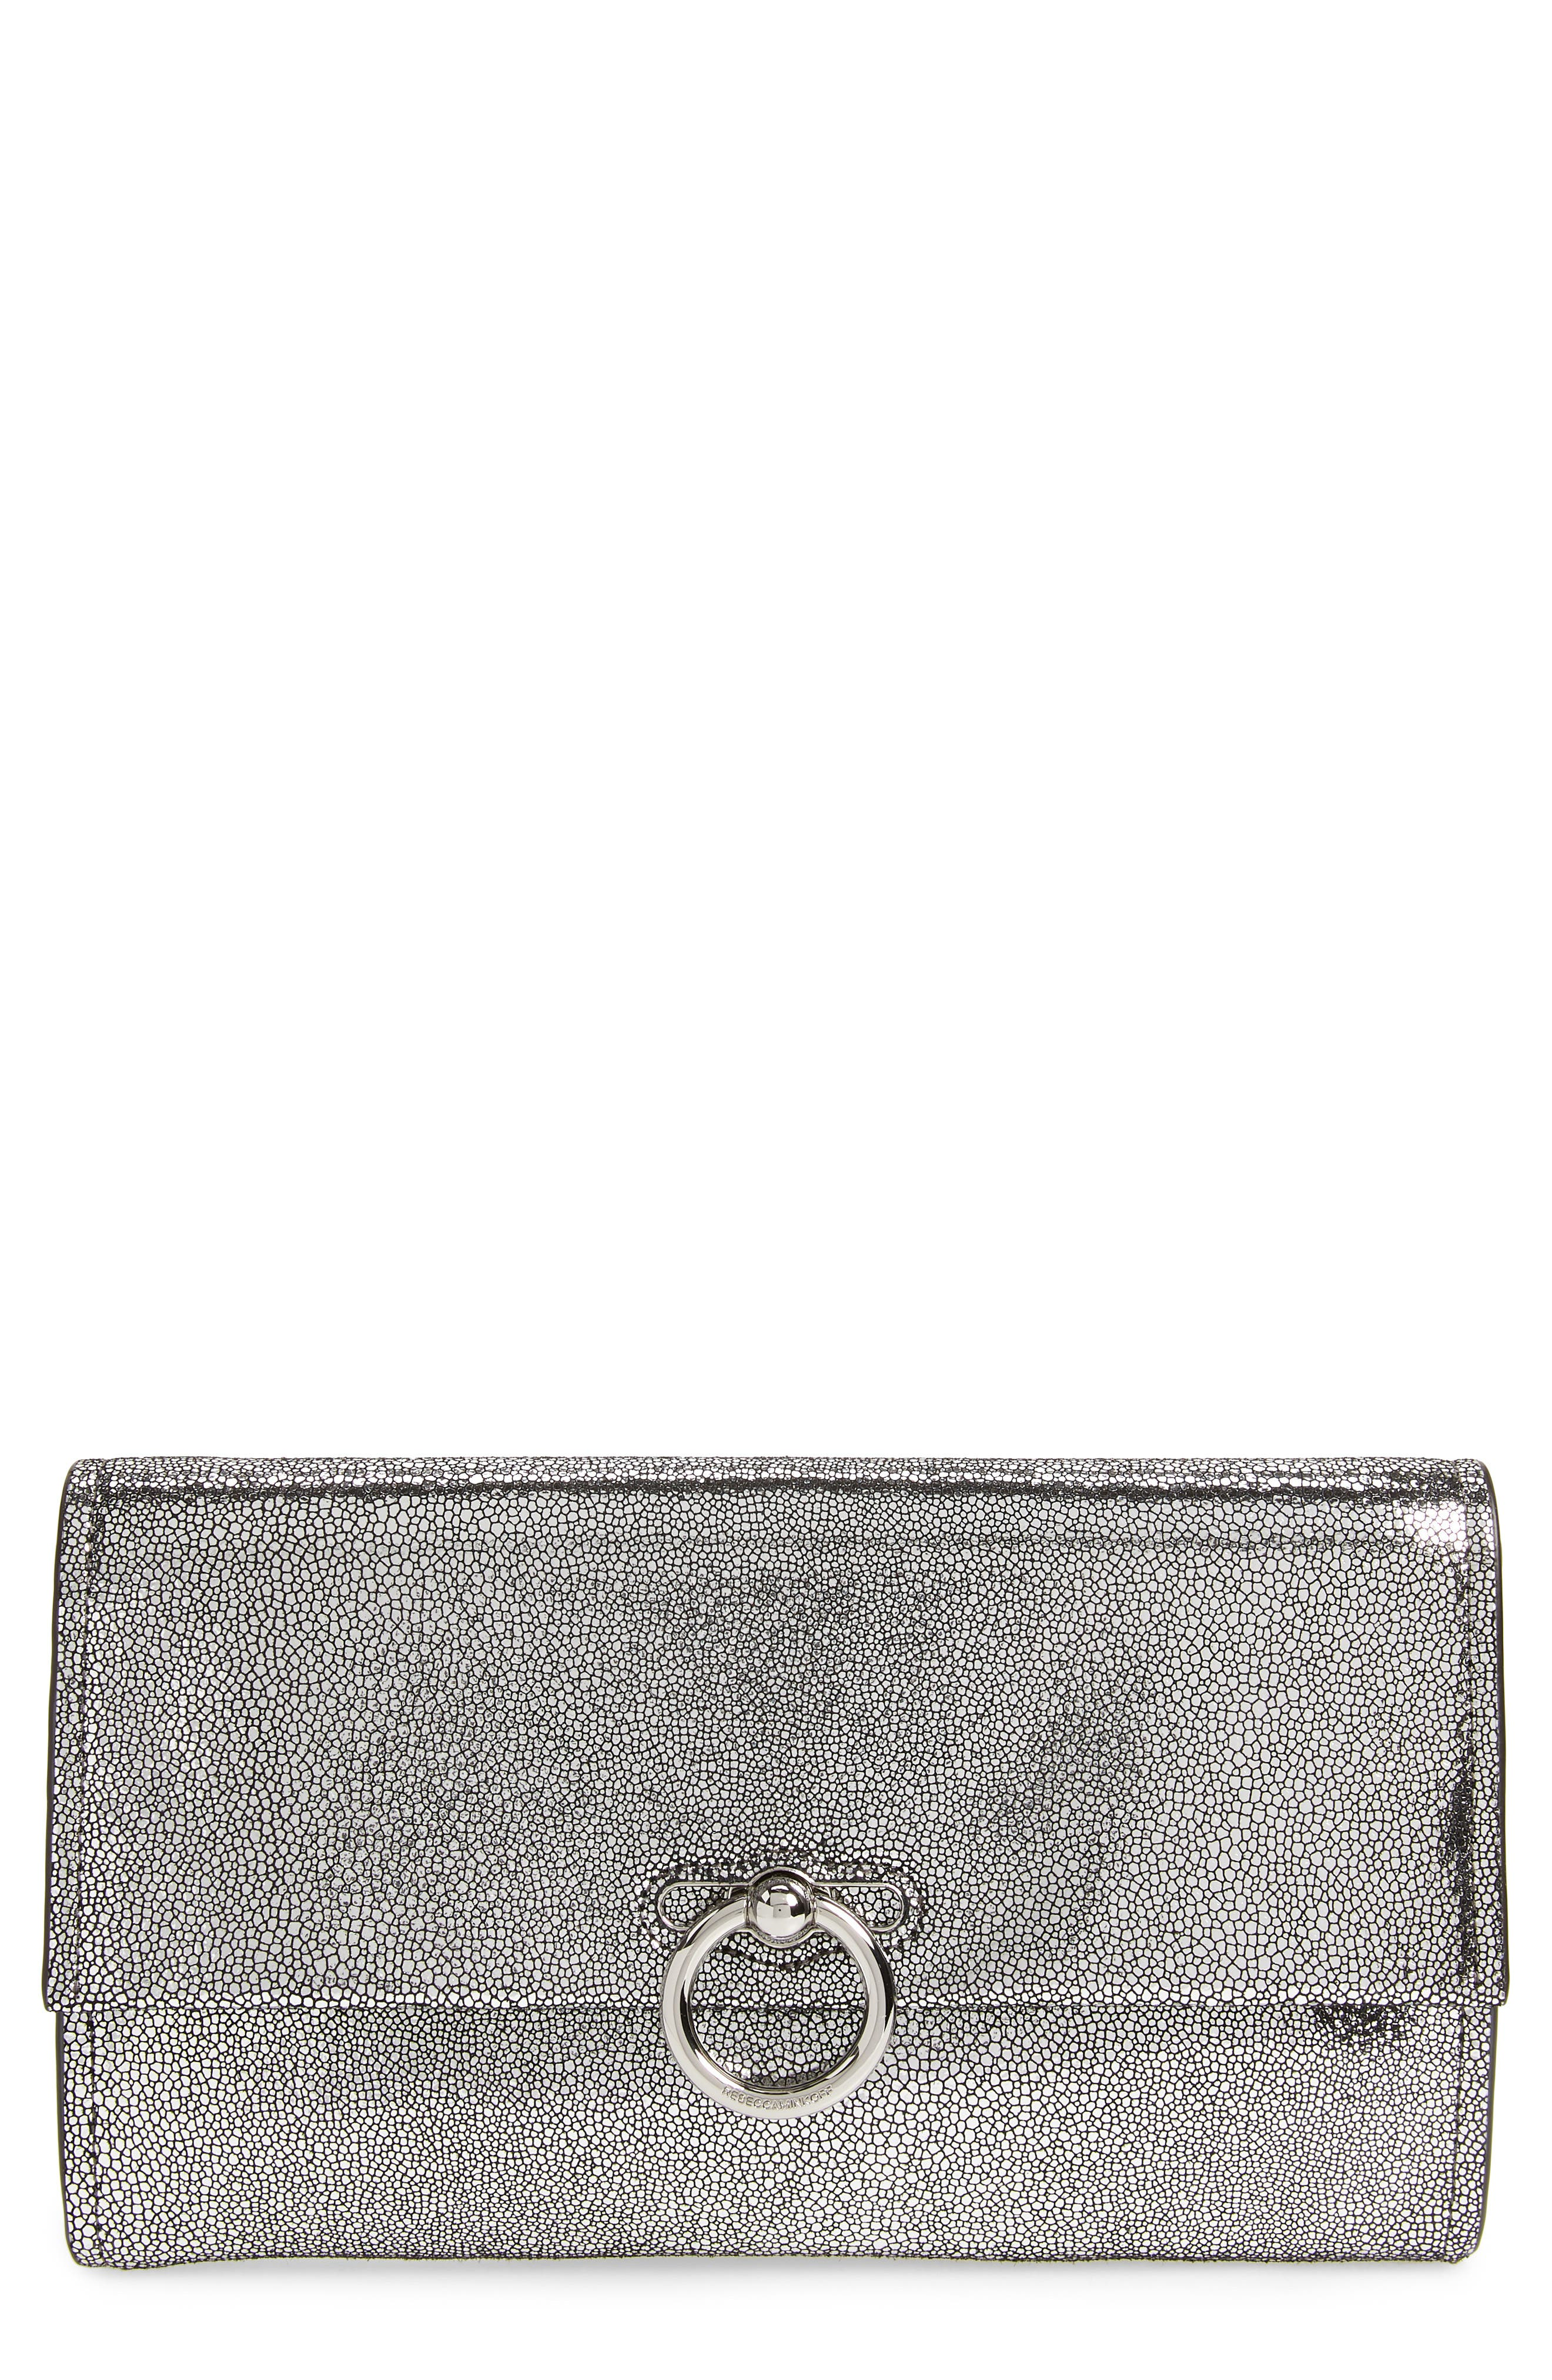 Jean Metallic Leather Clutch,                             Main thumbnail 1, color,                             SILVER